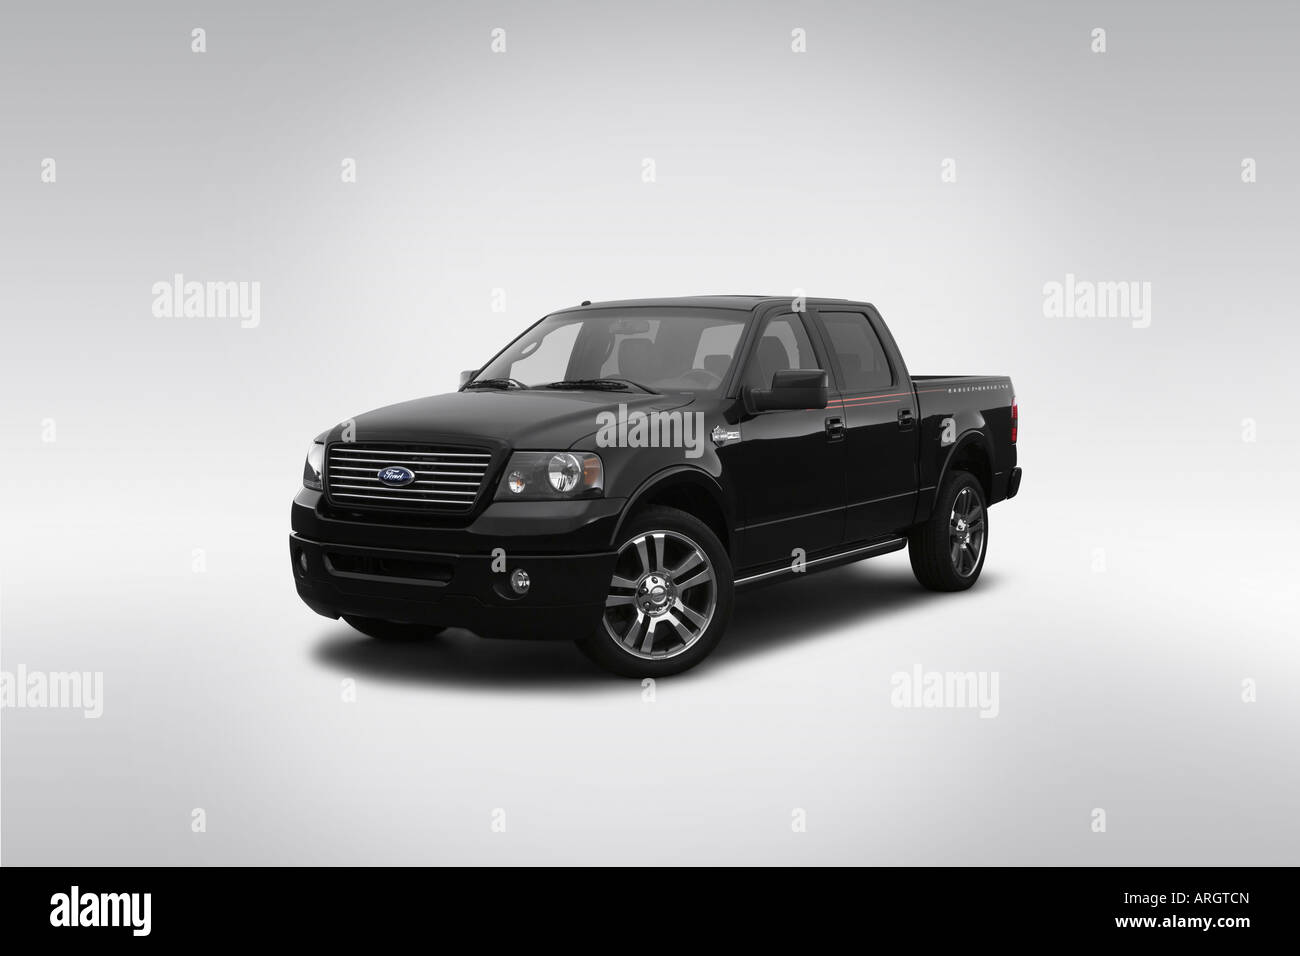 2007 Ford F 150 Harley Davidson In Black Front Angle View Stock F150